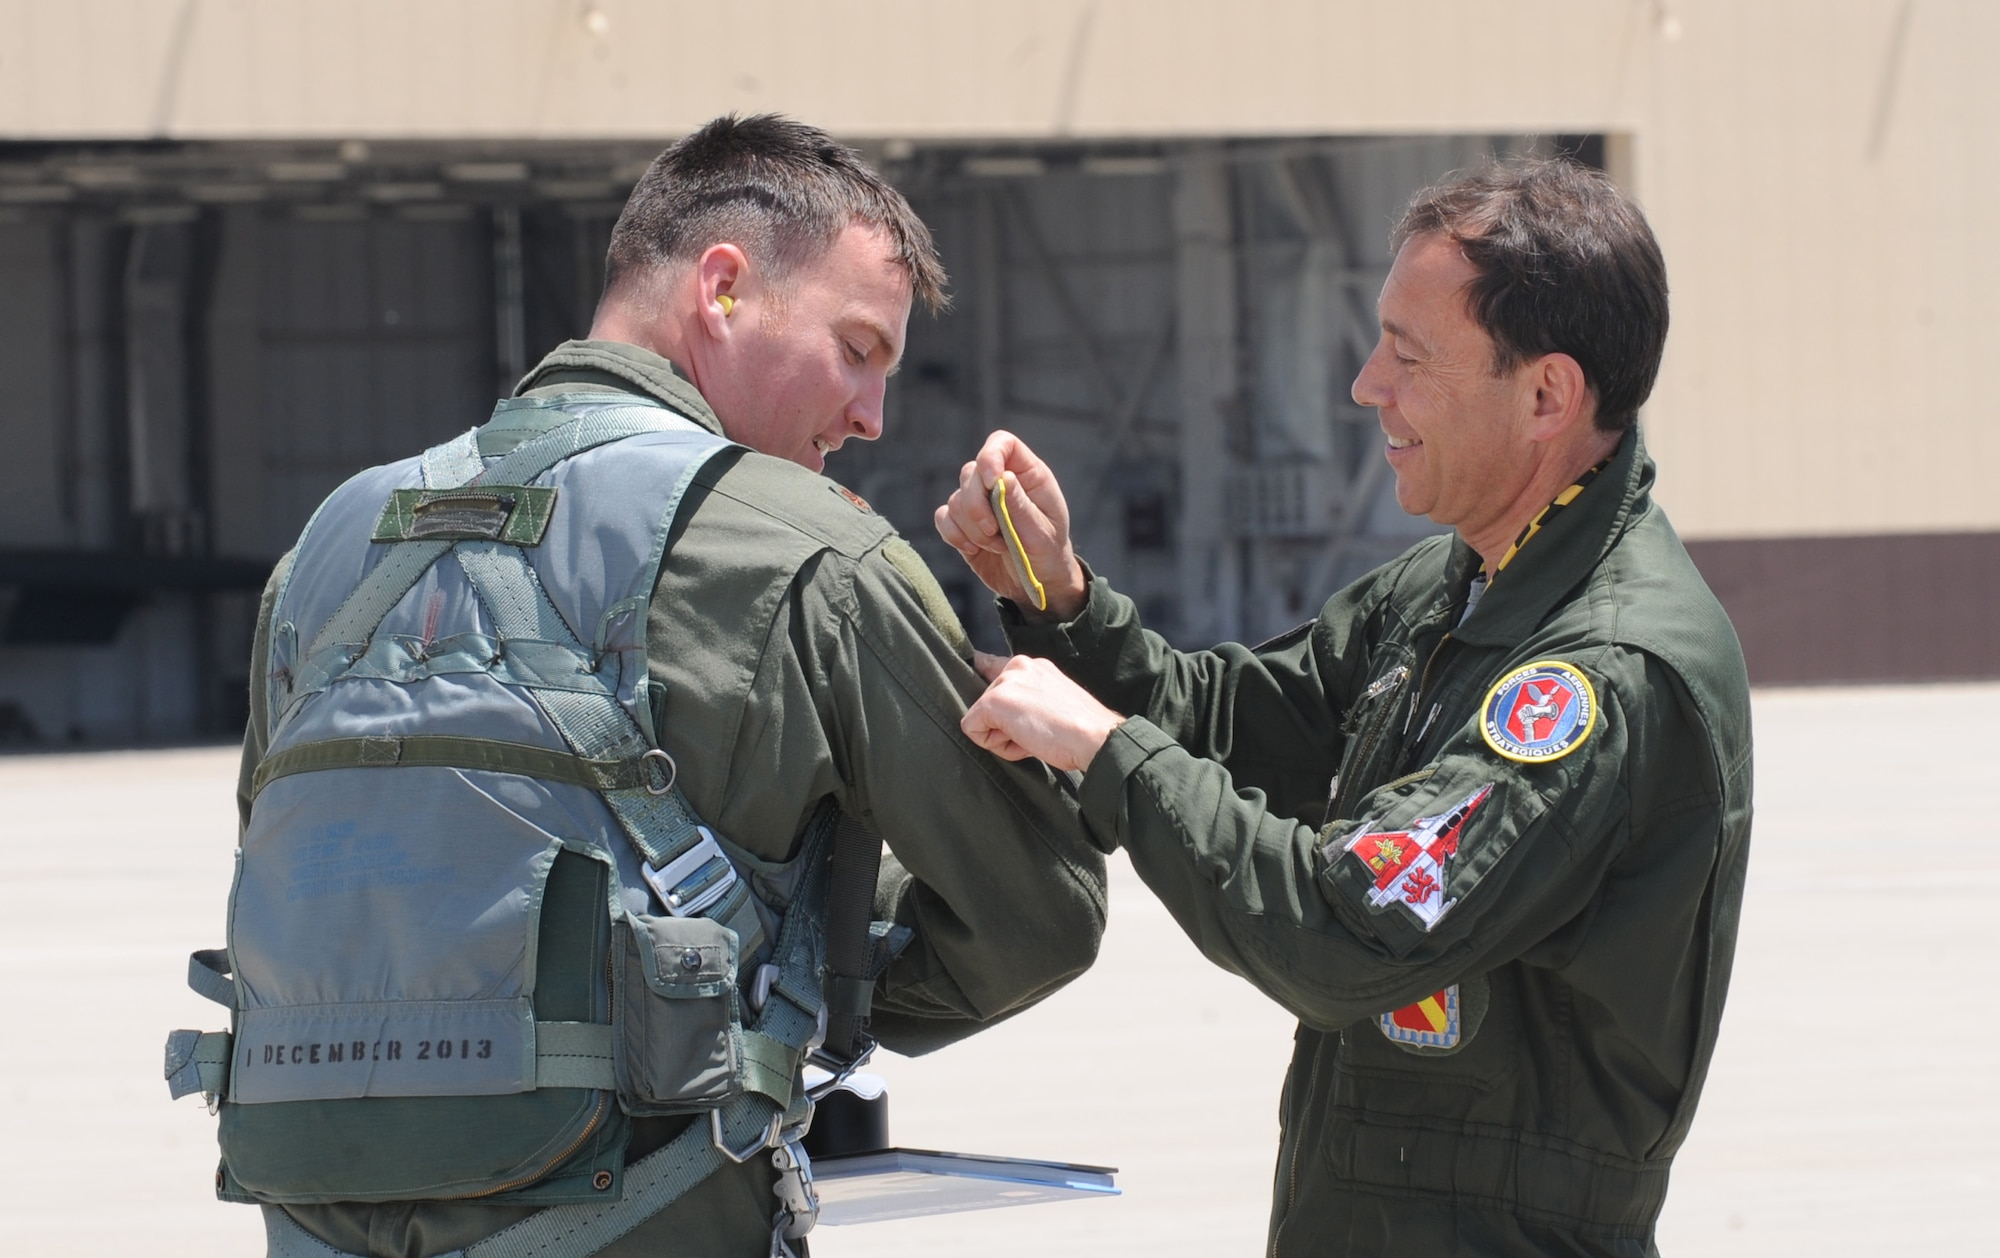 Lt. Gen. Philippe Steininger (right), the commander of the French air force's Strategic Air Forces Command, places his unit patch on Air Force Maj. Alexander Reich, a 394th Combat Training Squadron B-2 Spirit instructor pilot, at Whiteman Air Force Base, Mo., May 27, 2015. The U.S. and France have been longtime allies, joining forces in many conflicts throughout history. Steininger's visit is part of a regular series of exchanges between the two nations' strategic air forces. (U.S. Air Force photo/Staff Sgt. Alexandra M. Longfellow)